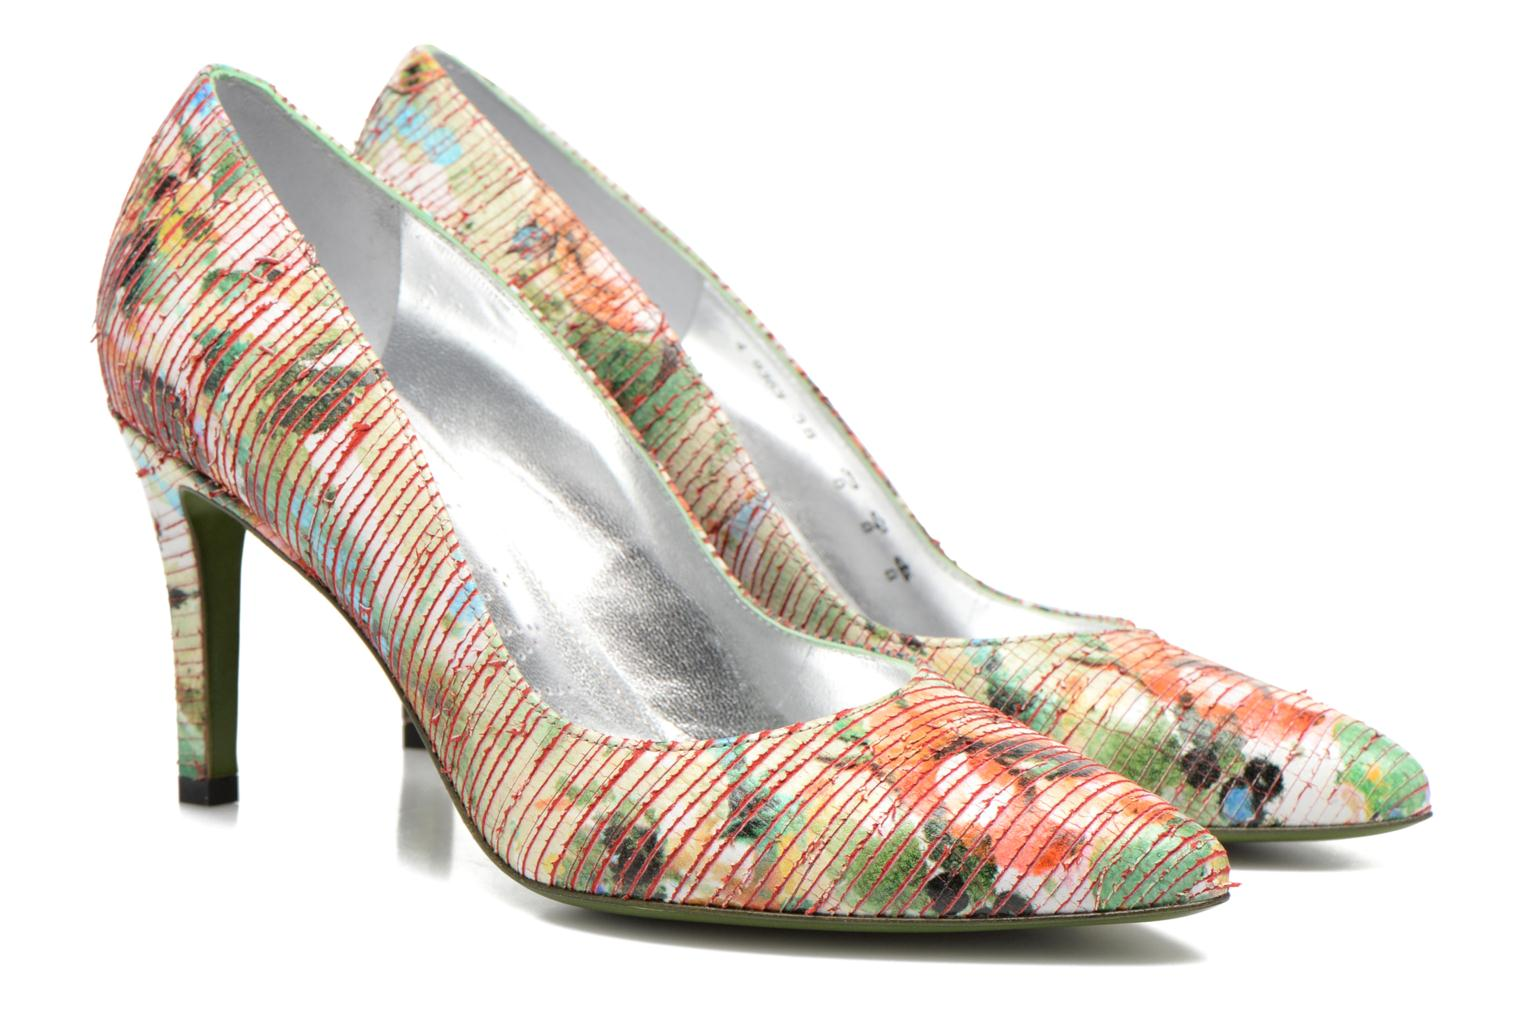 High heels Free Lance Itlys 7 Pumps Multicolor 3/4 view